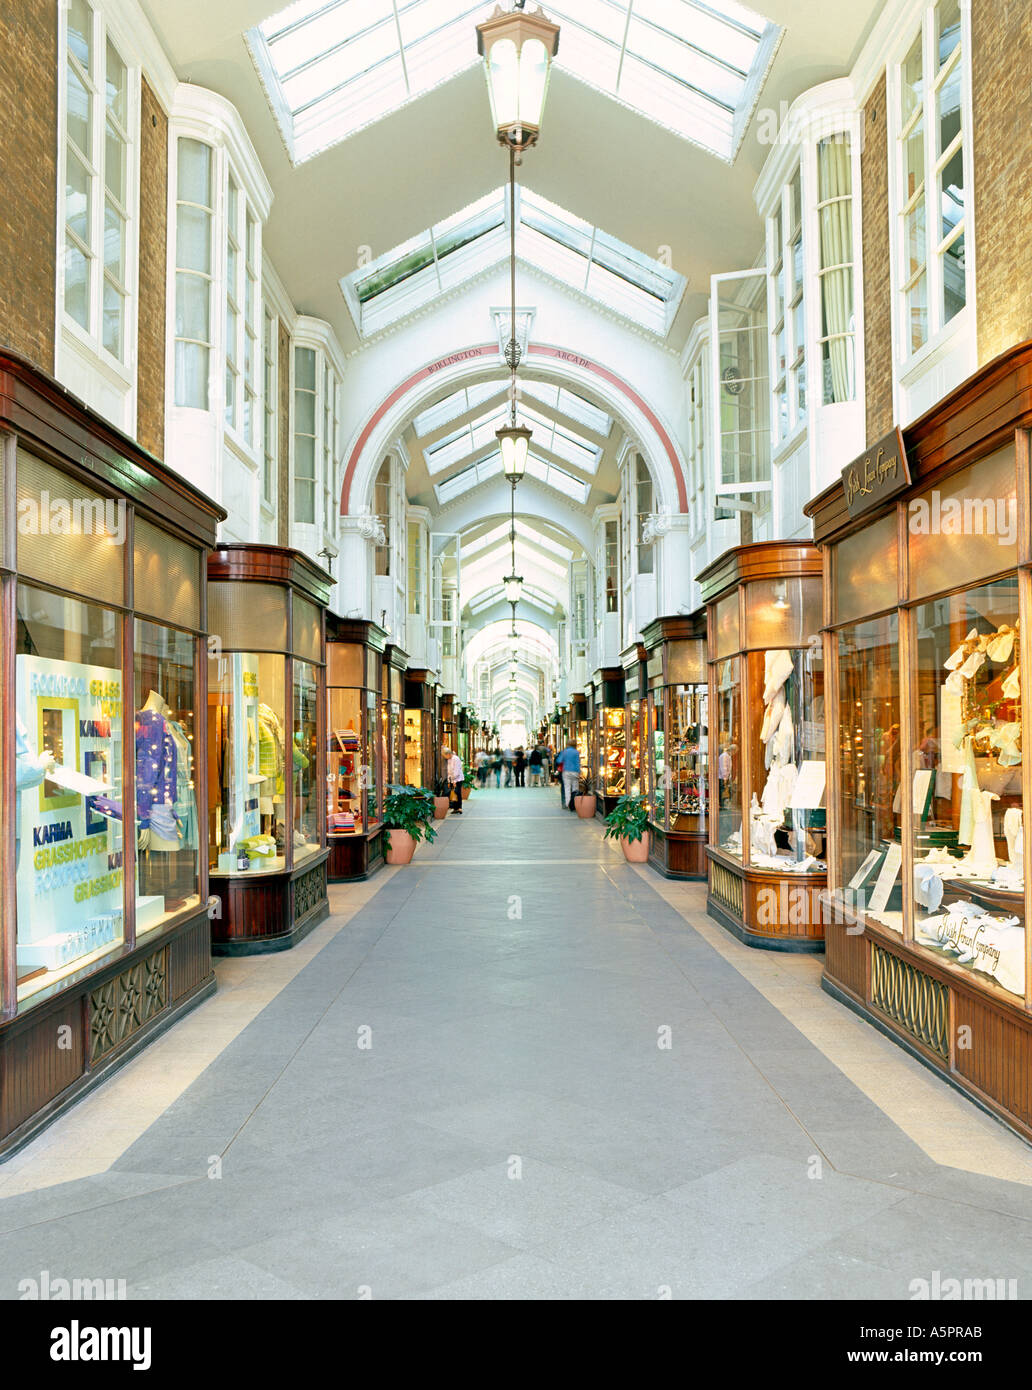 The Burlington Arcade which runs off Picadilly in London. Stock Photo